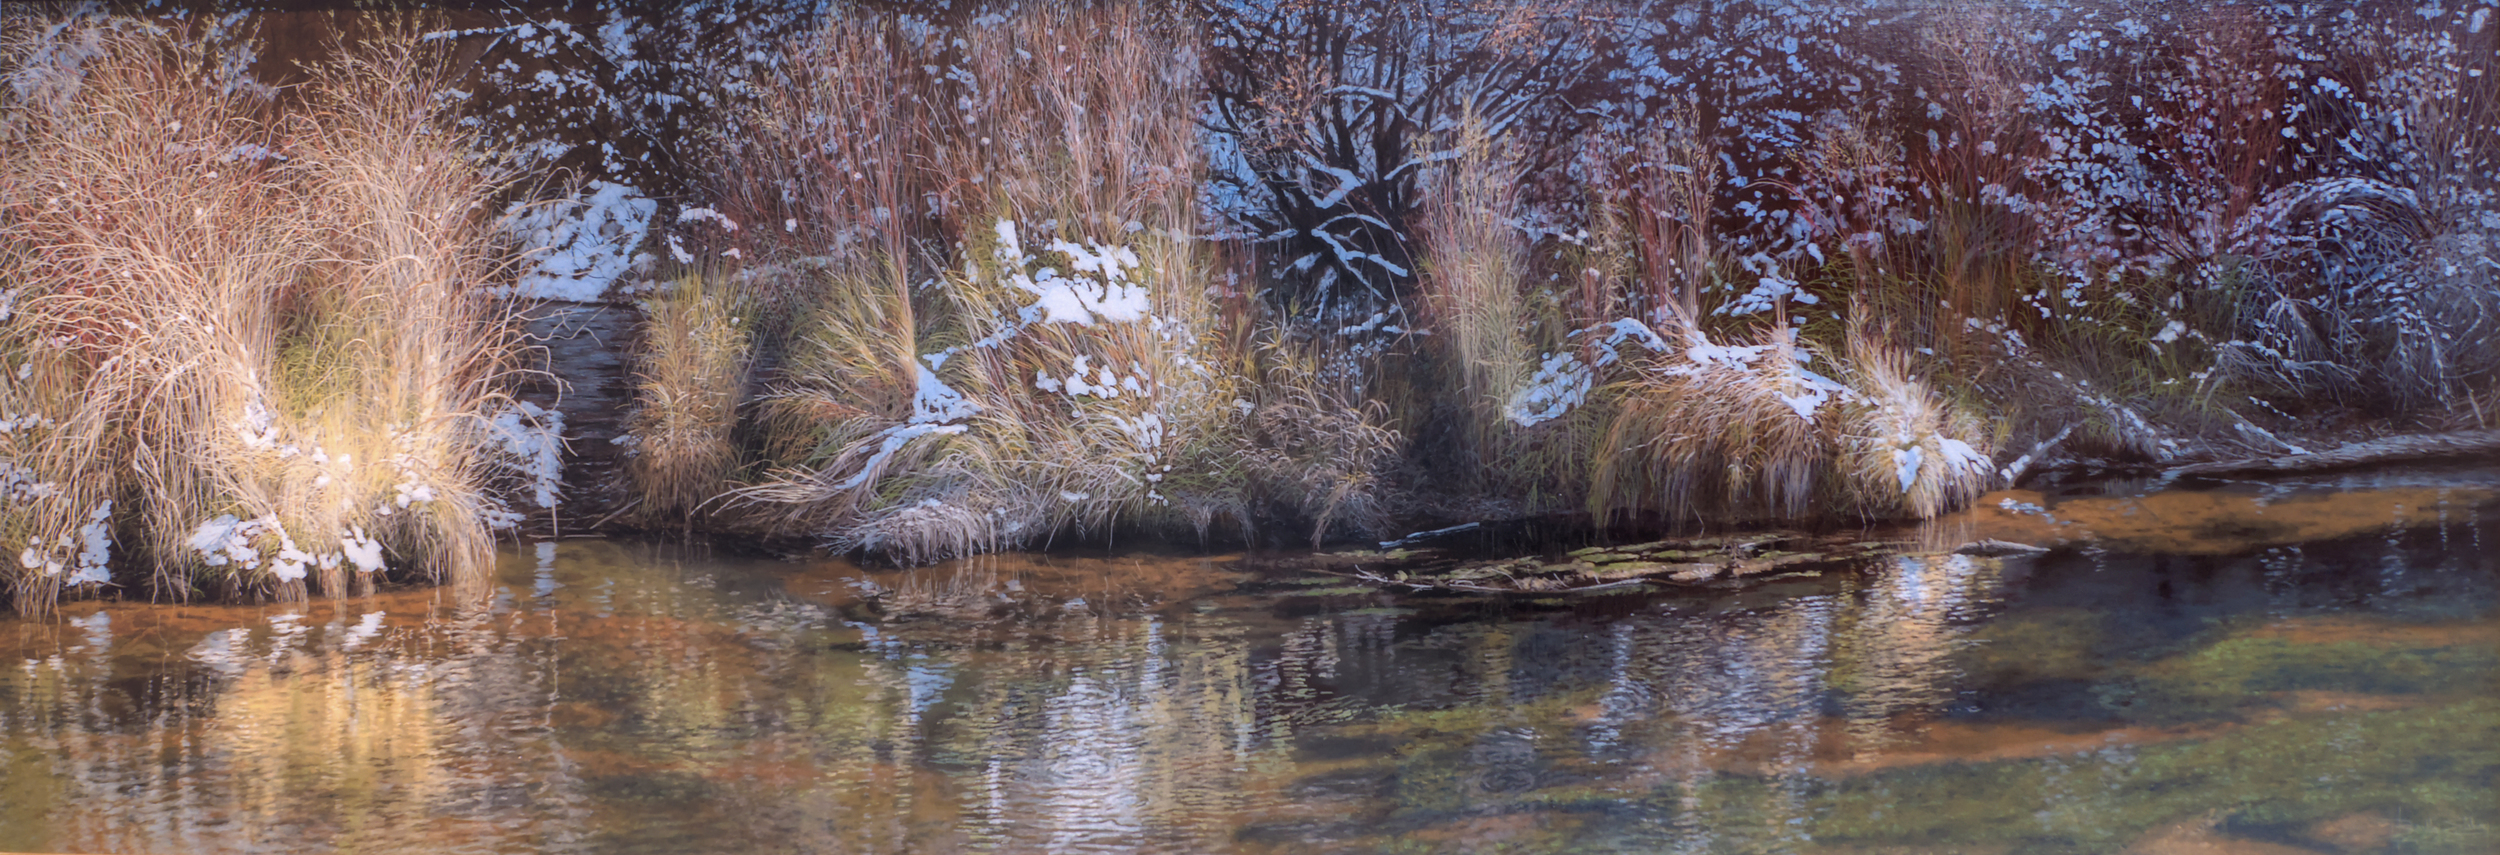 "Fascinatin Rhythms   Along the Frying Pan River. original Acrylic painting 24"" by 72""  This is a new painting just finished for this show. It shows an early November snowfall melting in the warmth of the sun. This is a quiet stretch of the upper Frying Pan River below Aspen CO."